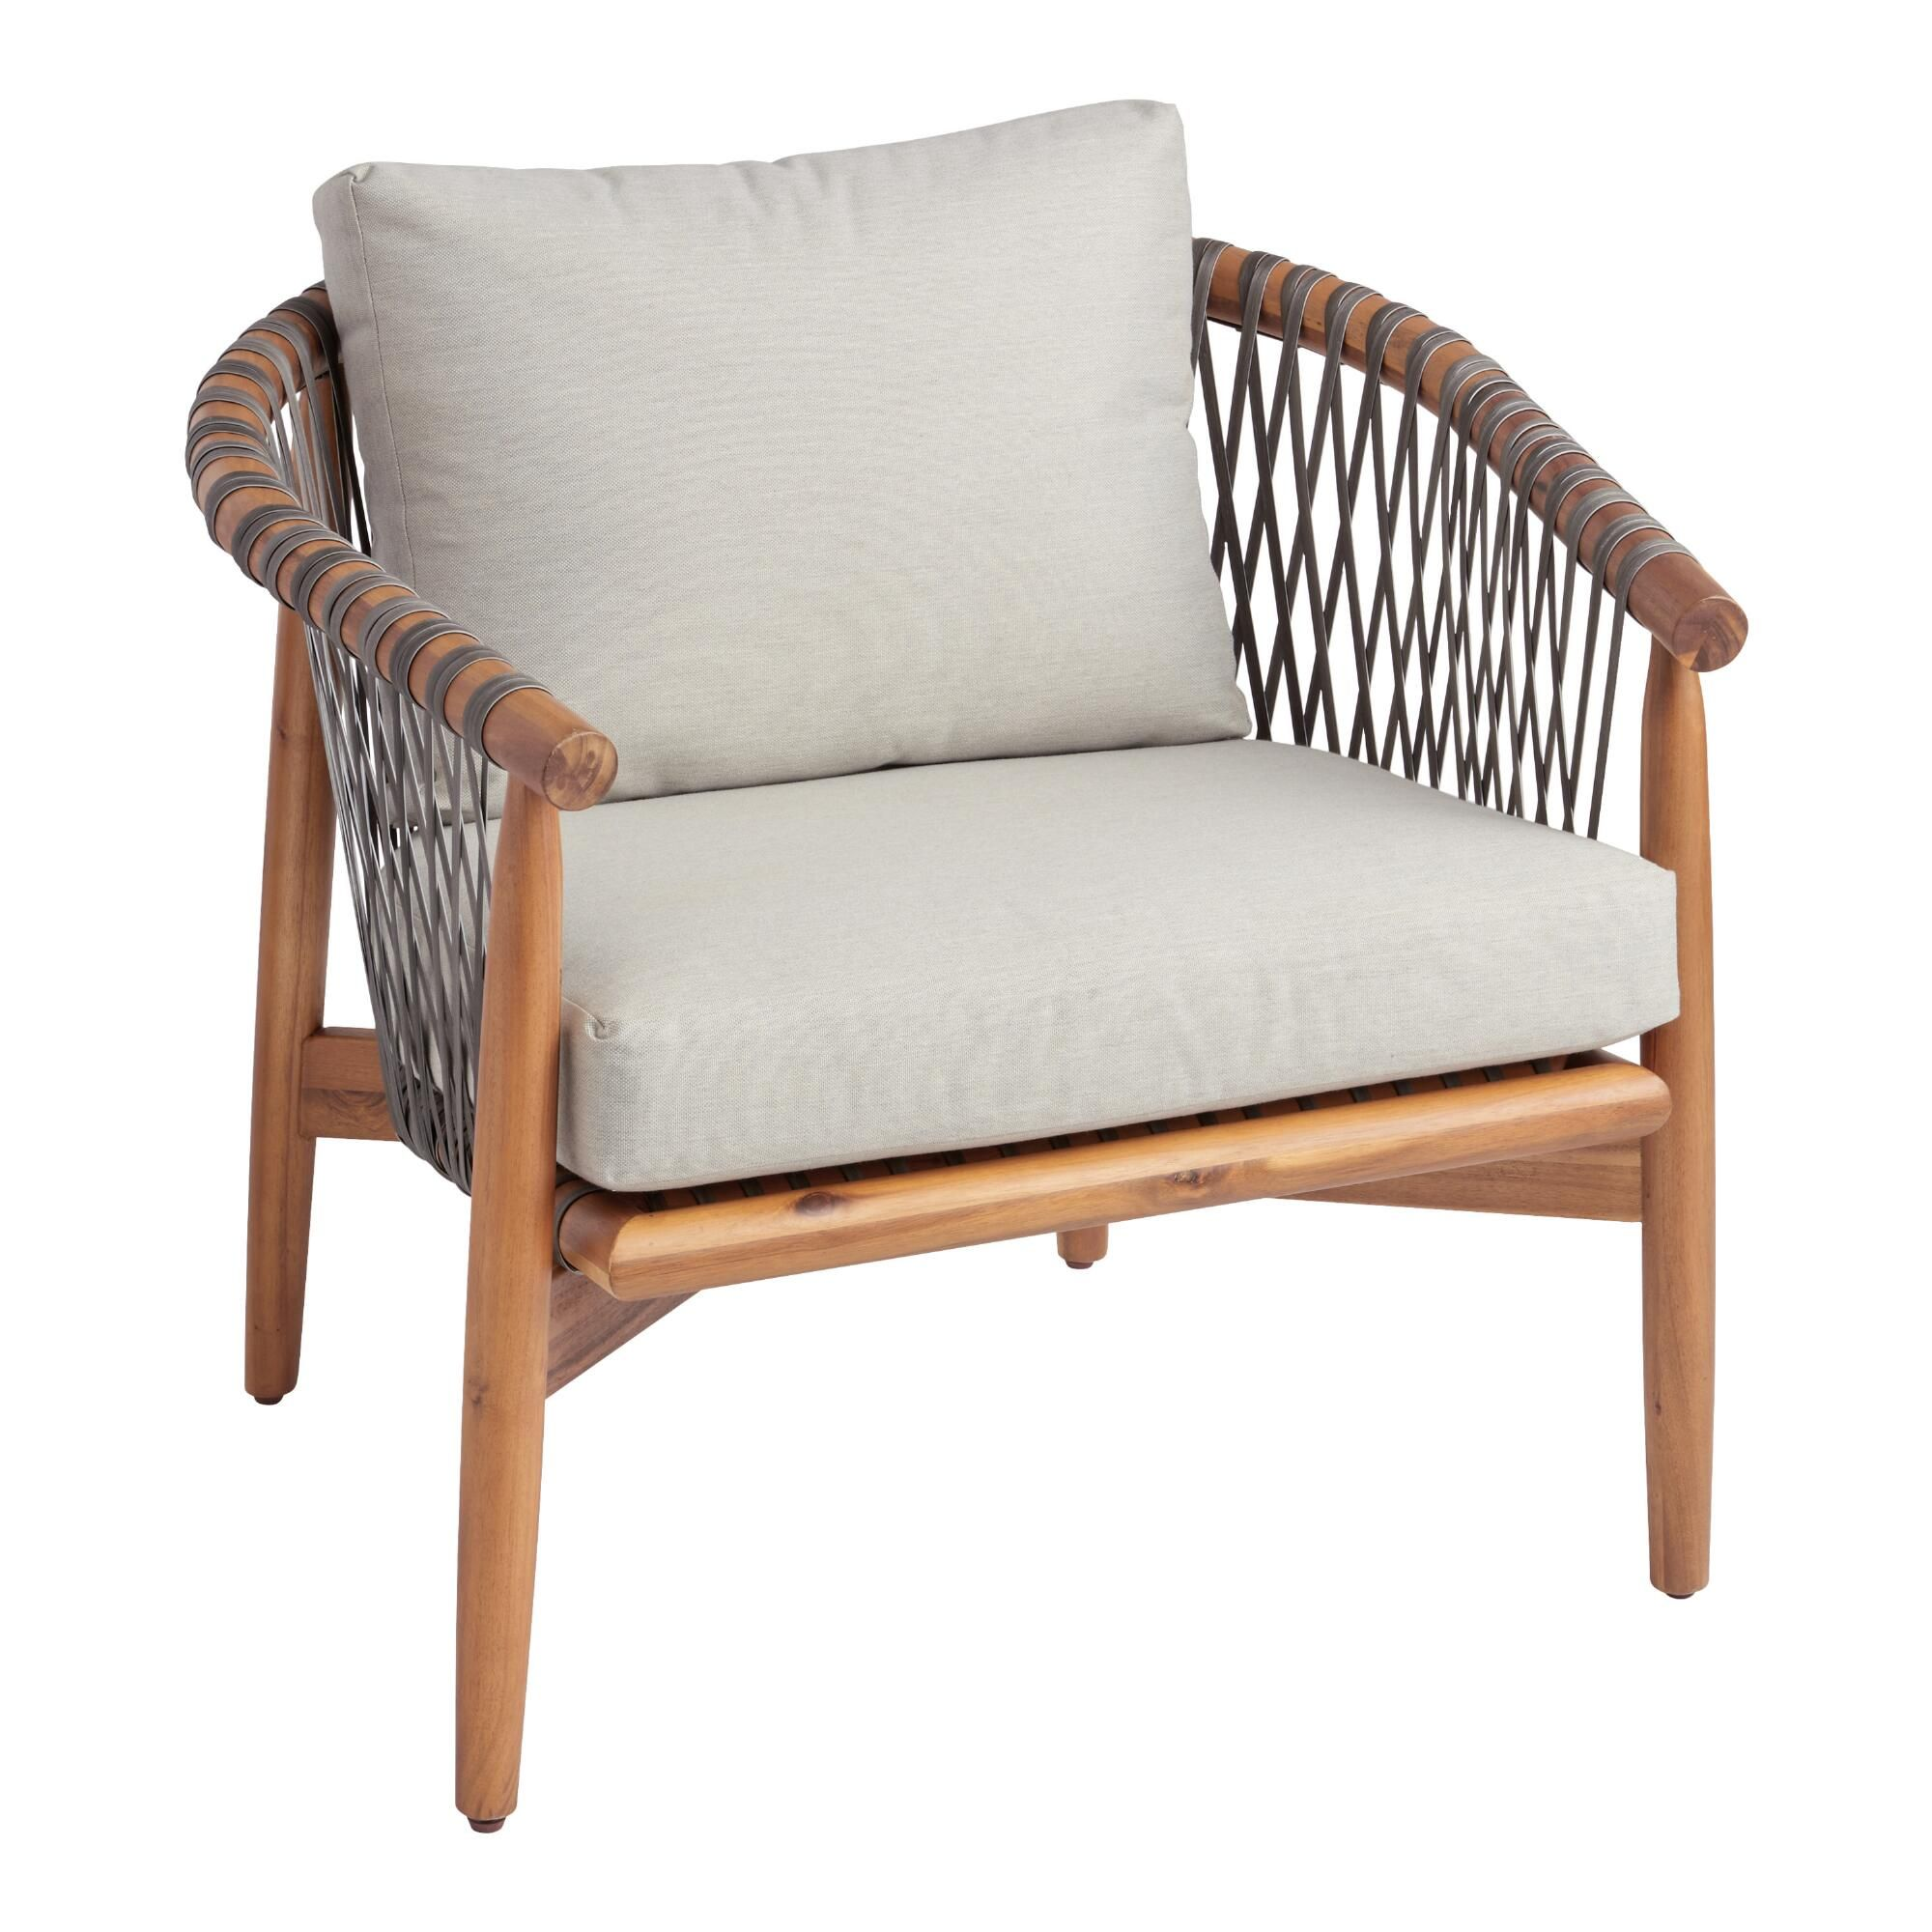 All Weather Wicker And Acacia Vance Outdoor Chair In 2021 Outdoor Chairs Patio Chairs Outdoor Wicker Chairs